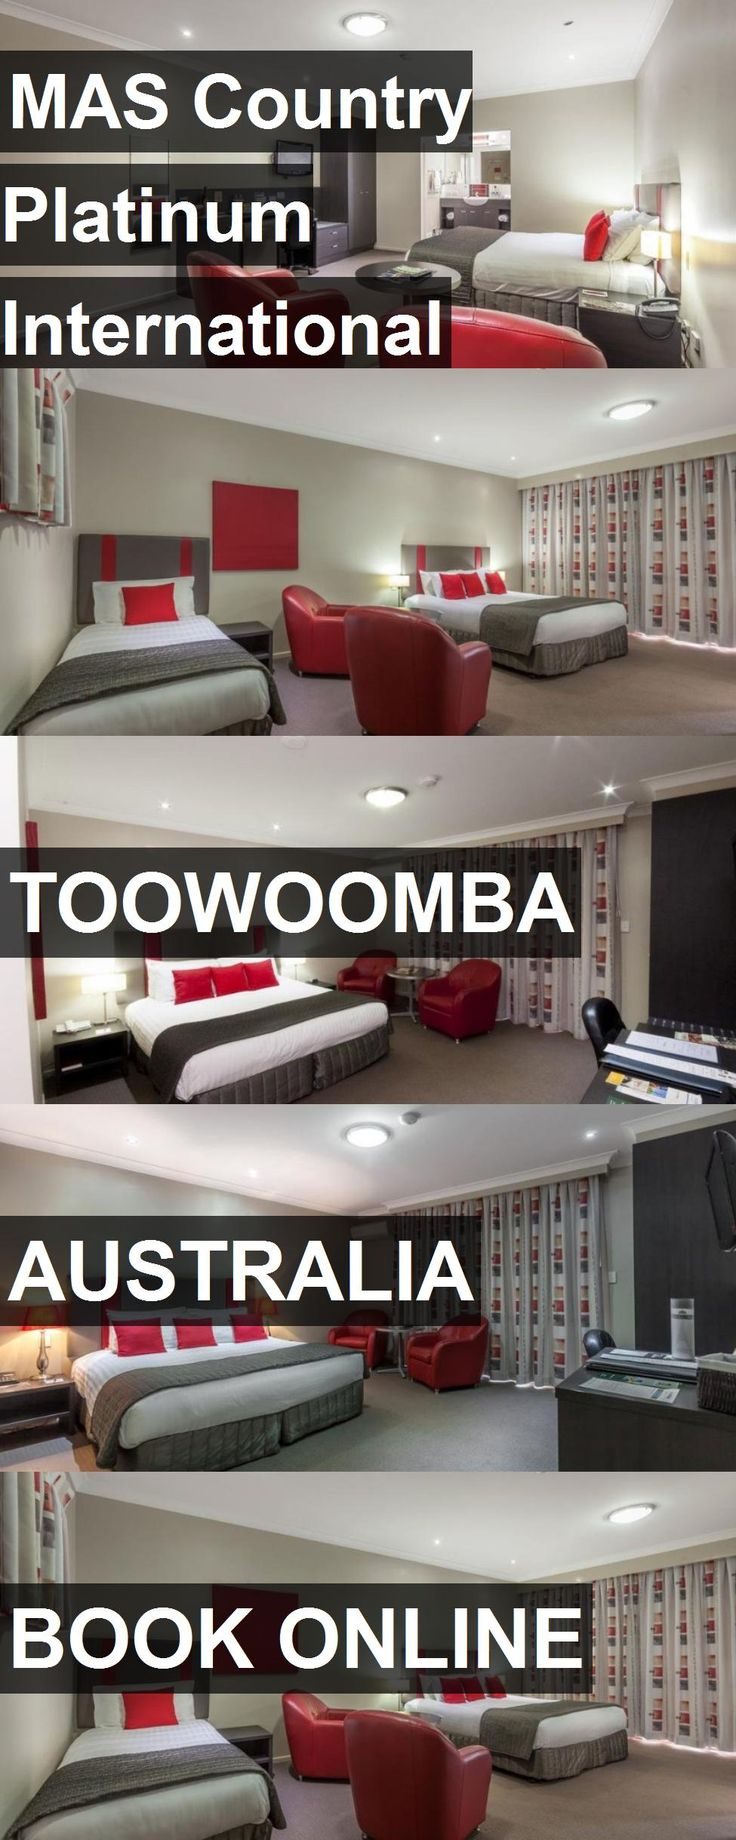 Hotel MAS Country Platinum International in Toowoomba, Australia. For more information, photos, reviews and best prices please follow the link. #Australia #Toowoomba #MASCountryPlatinumInternational #hotel #travel #vacation